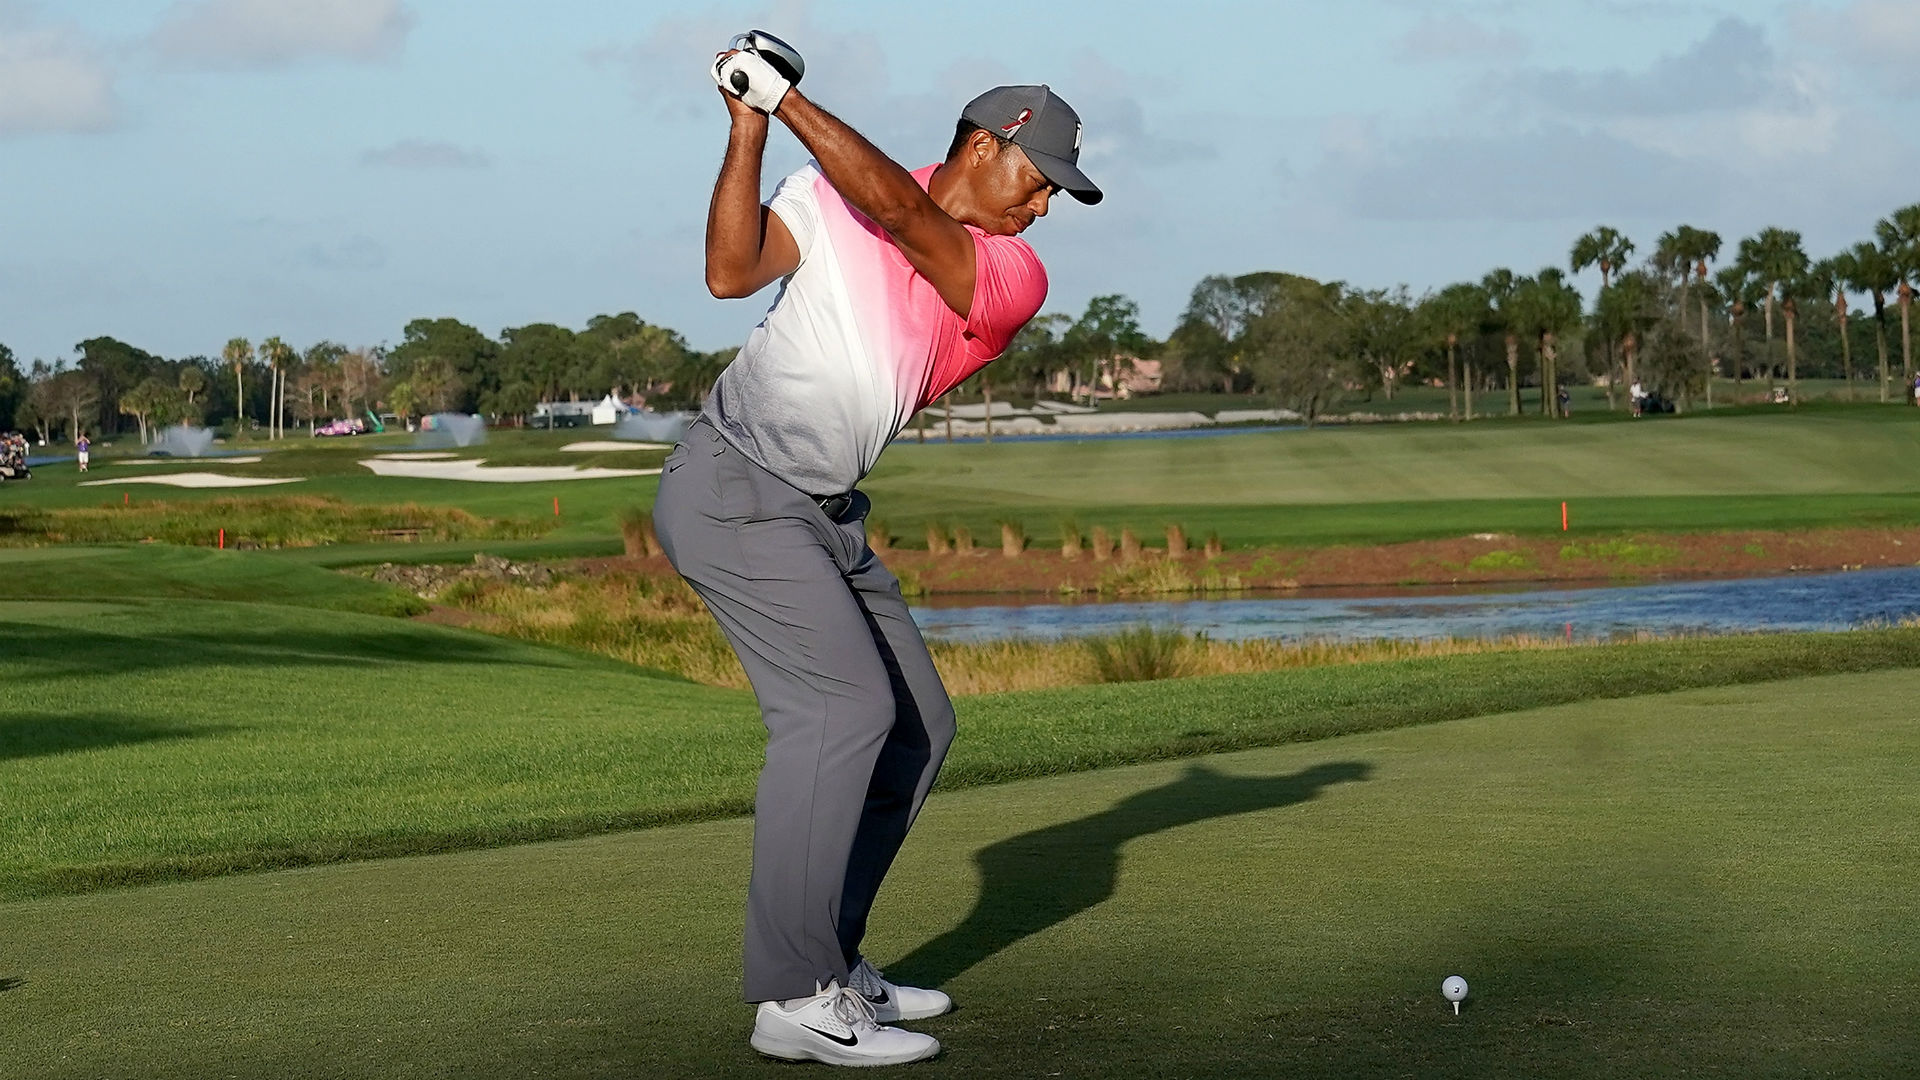 results from tiger woods u0026 39  round 3 at the honda classic